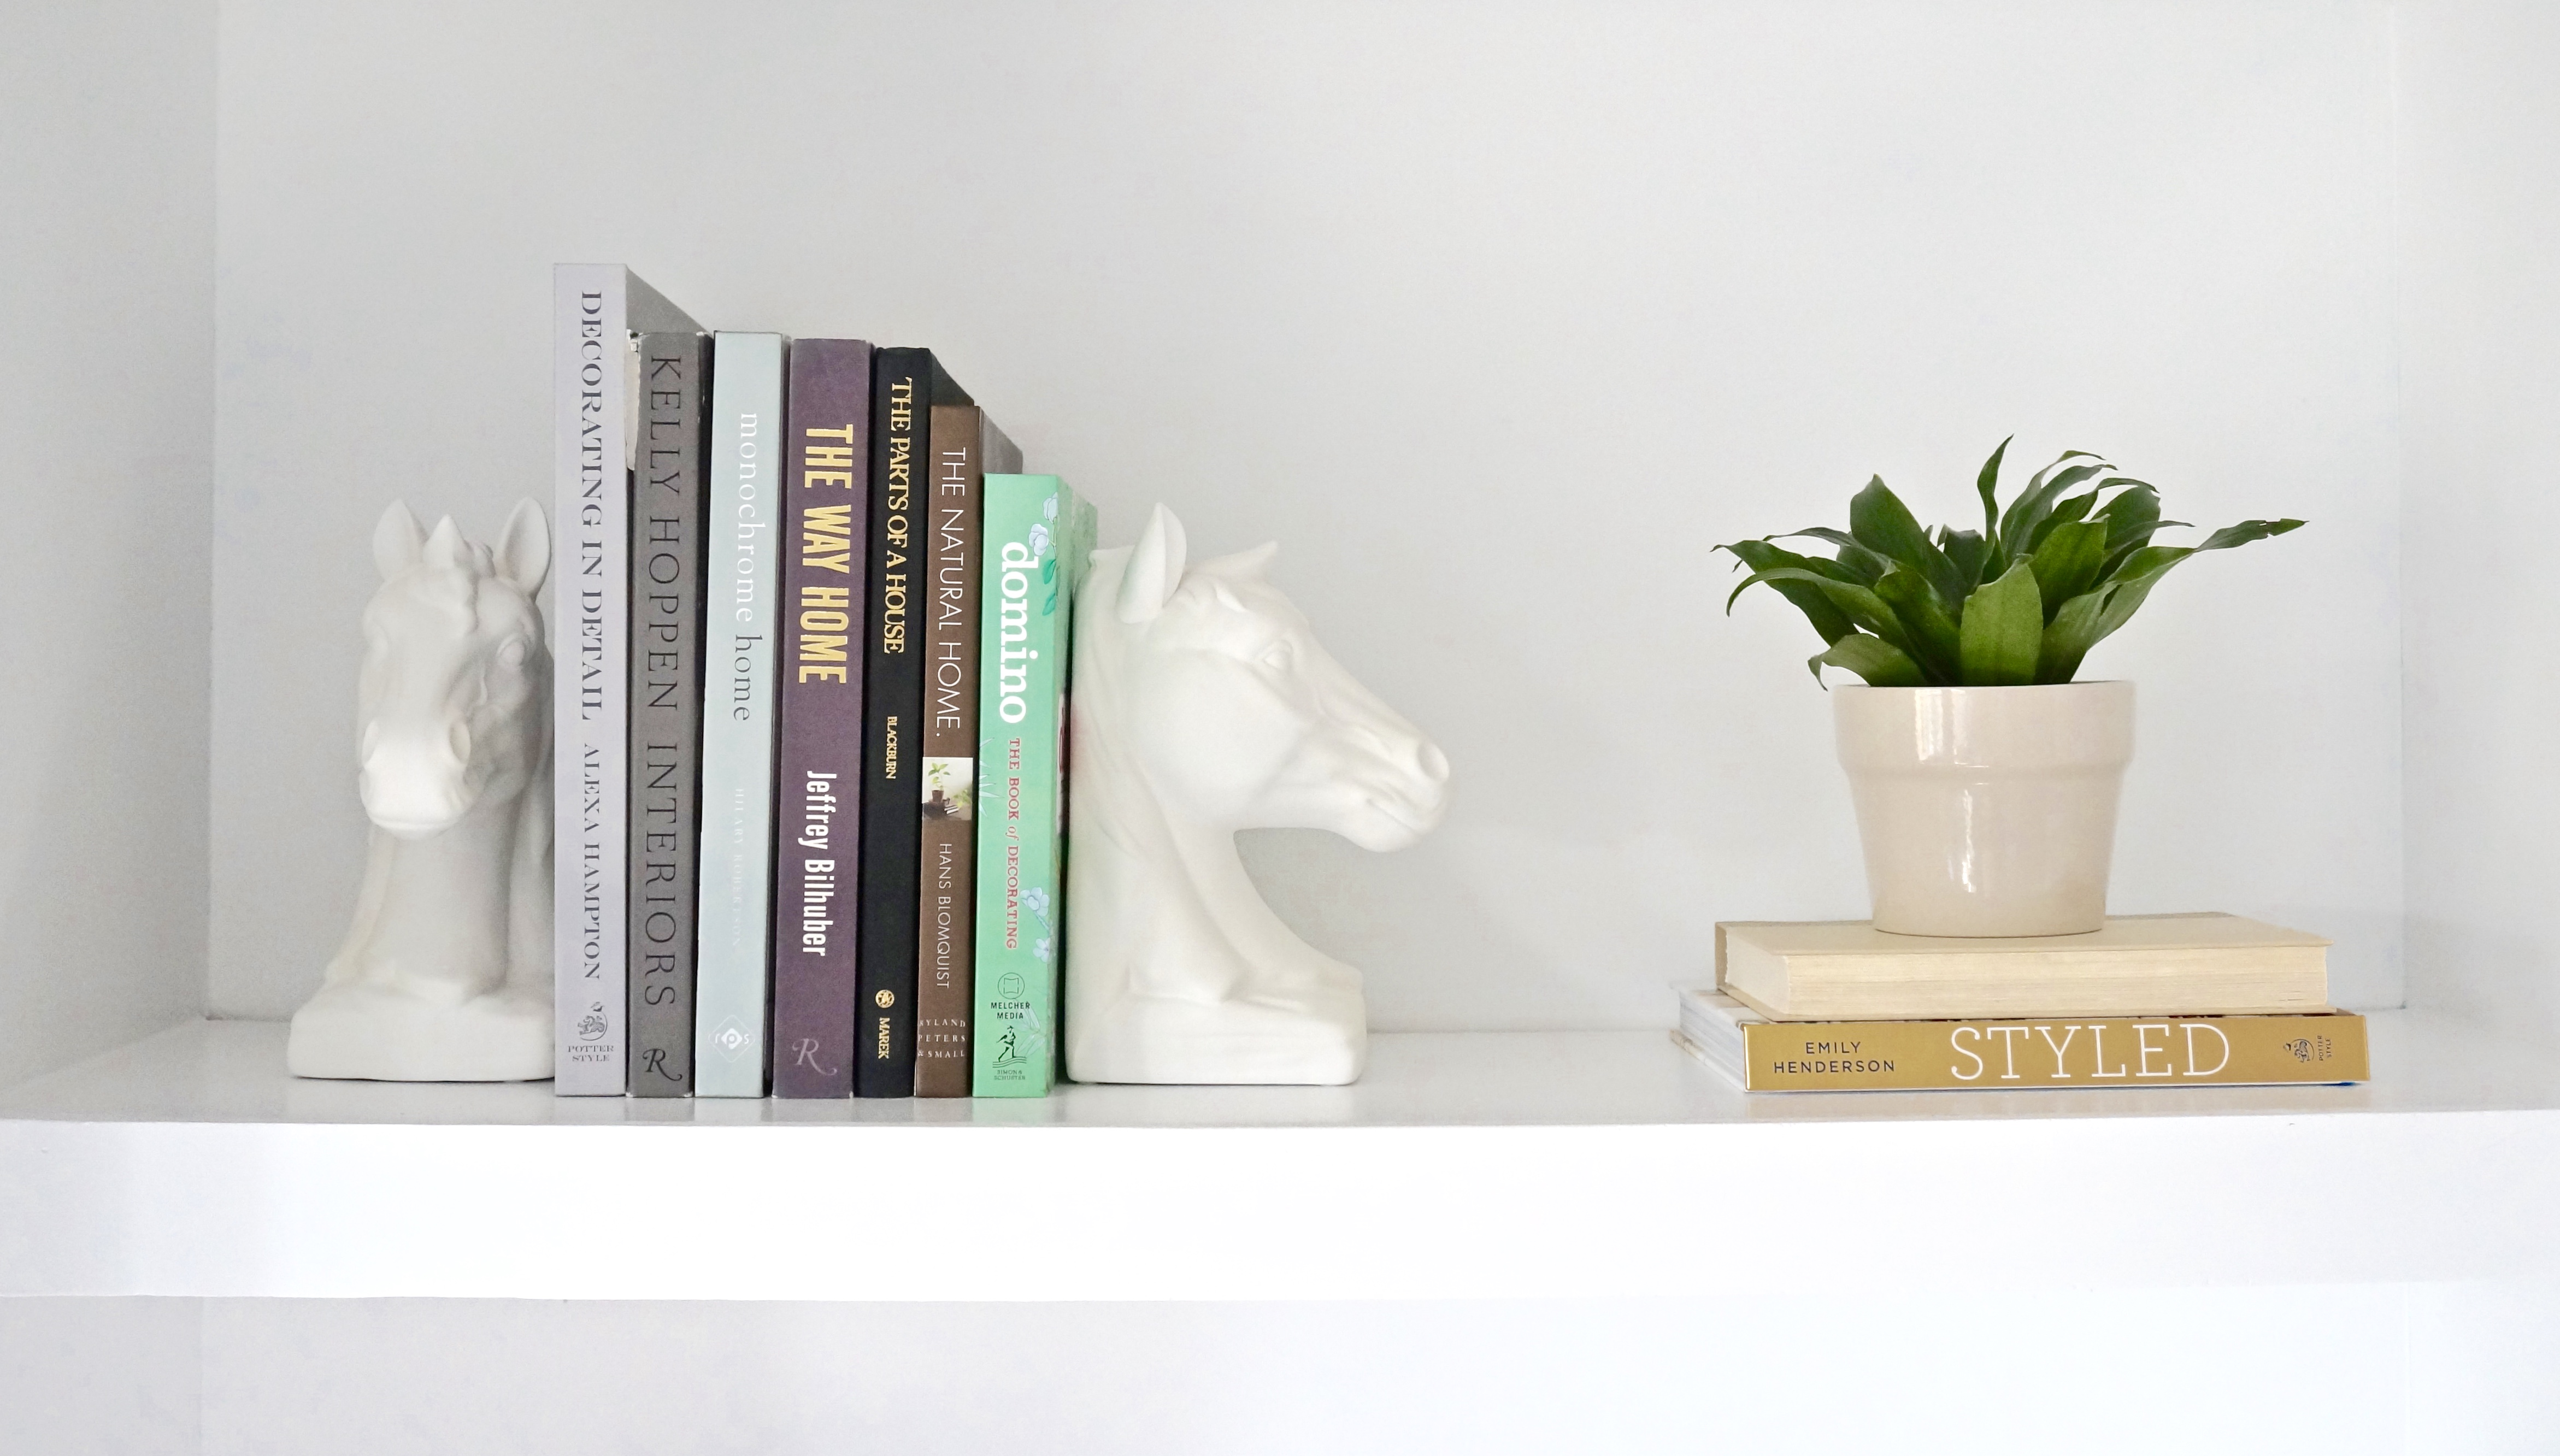 Summer Shelf Close Up Left For Books and Plant